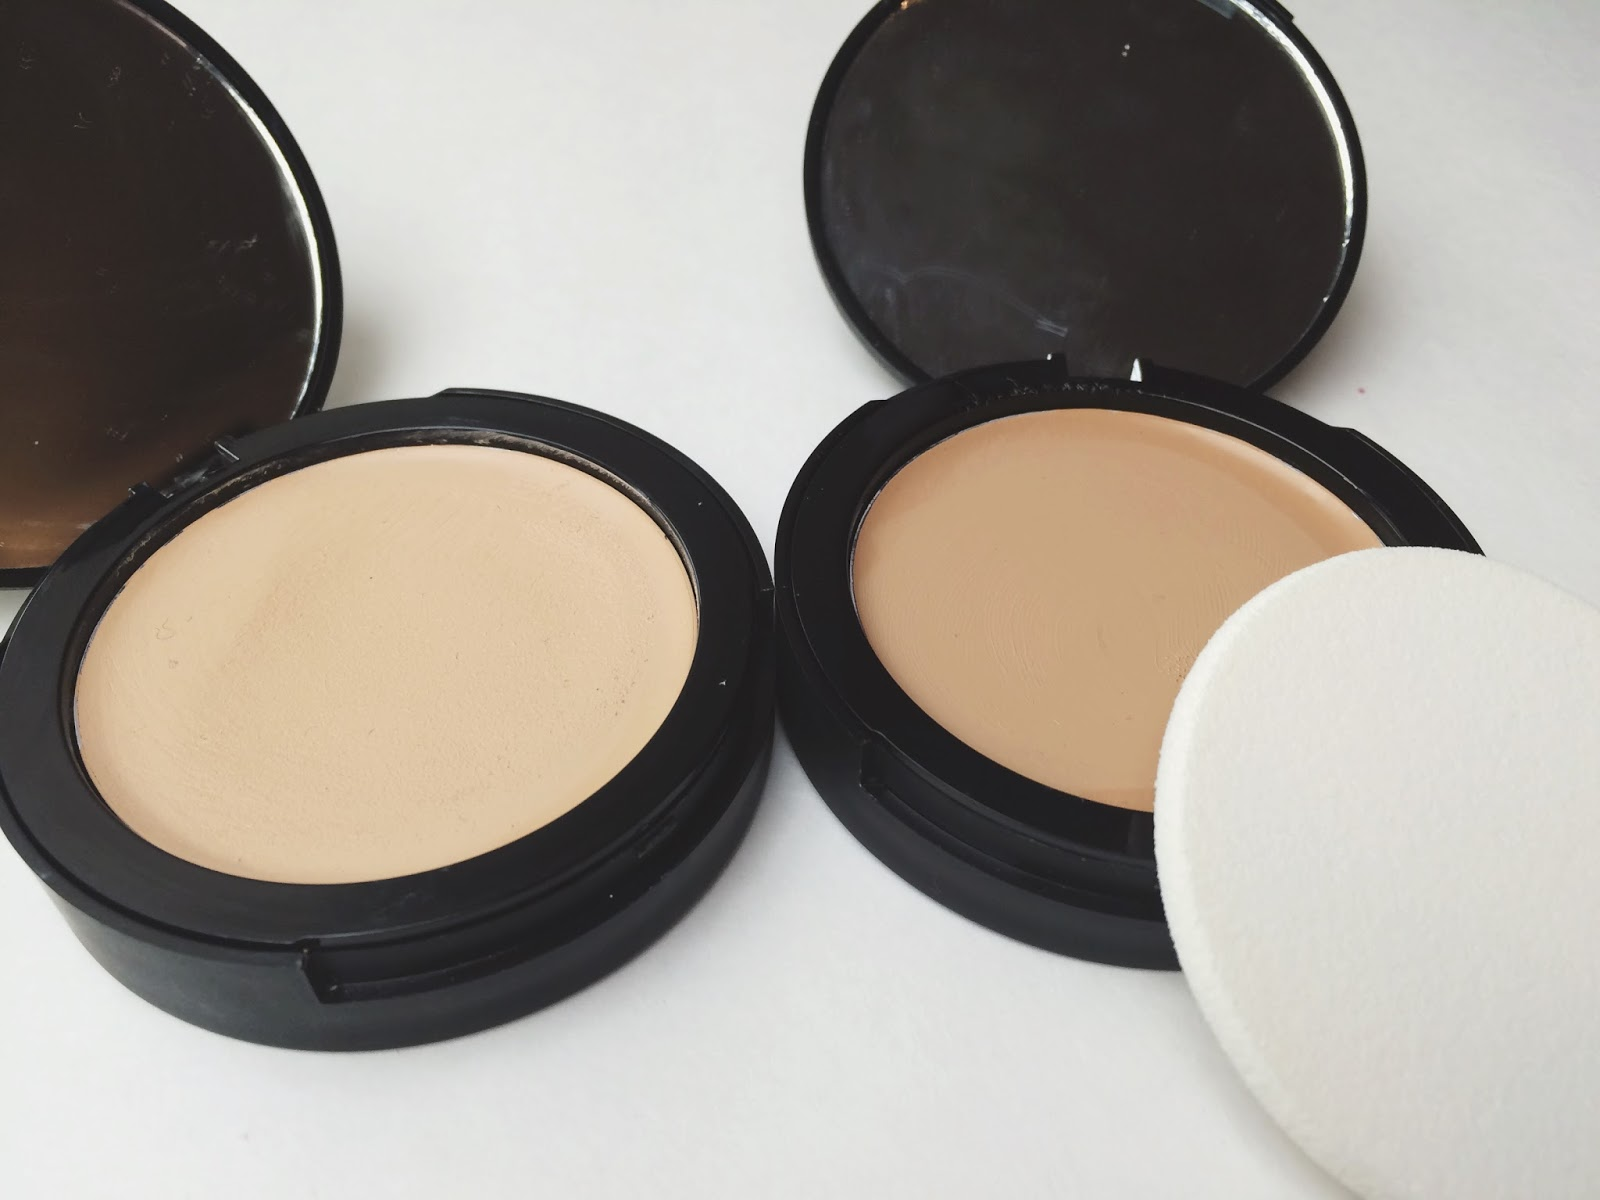 Elf hd foundation review